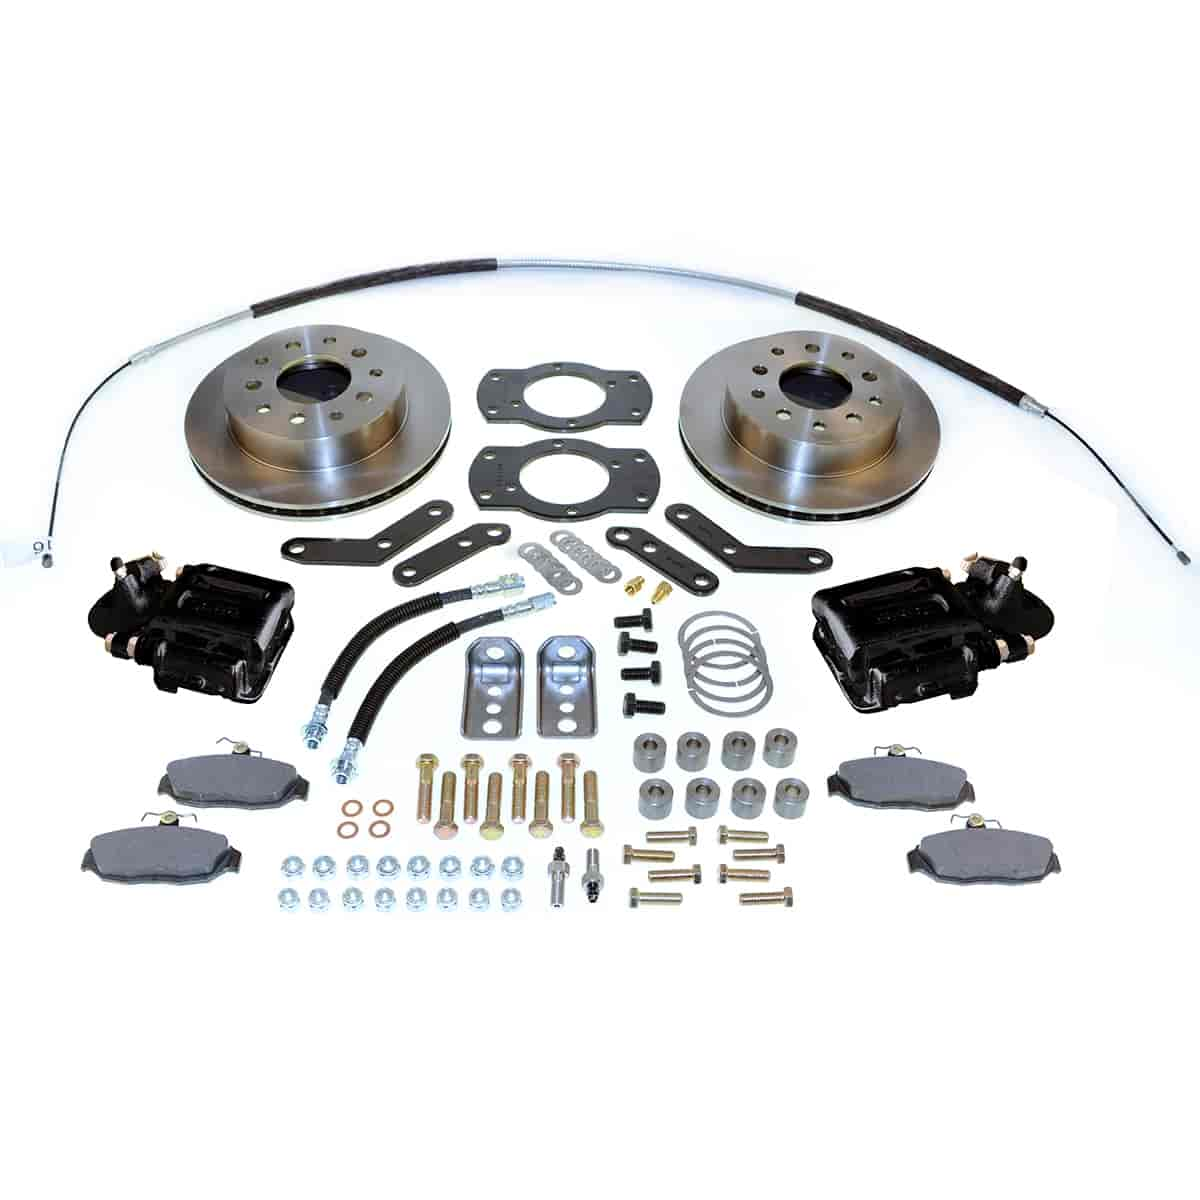 Stainless Steel Brakes A125-1BK - Stainless Steel Brakes Single Piston Rear Disc Brake Conversion Kit